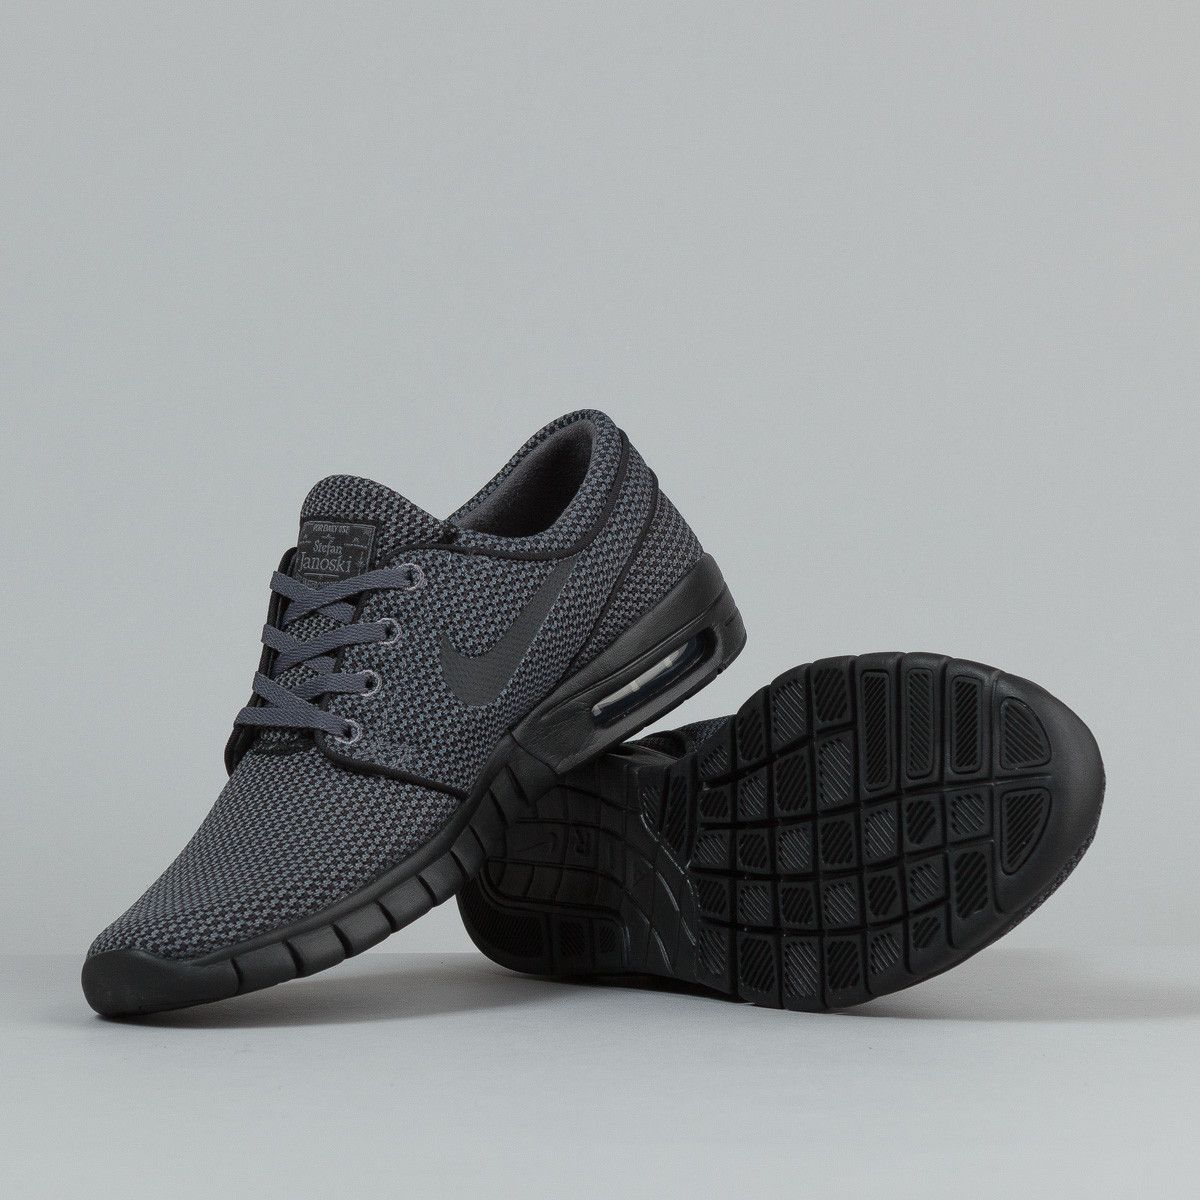 pretty nice 4f097 18600 Nike SB Stefan Janoski Max Shoes - Dark Grey   Black